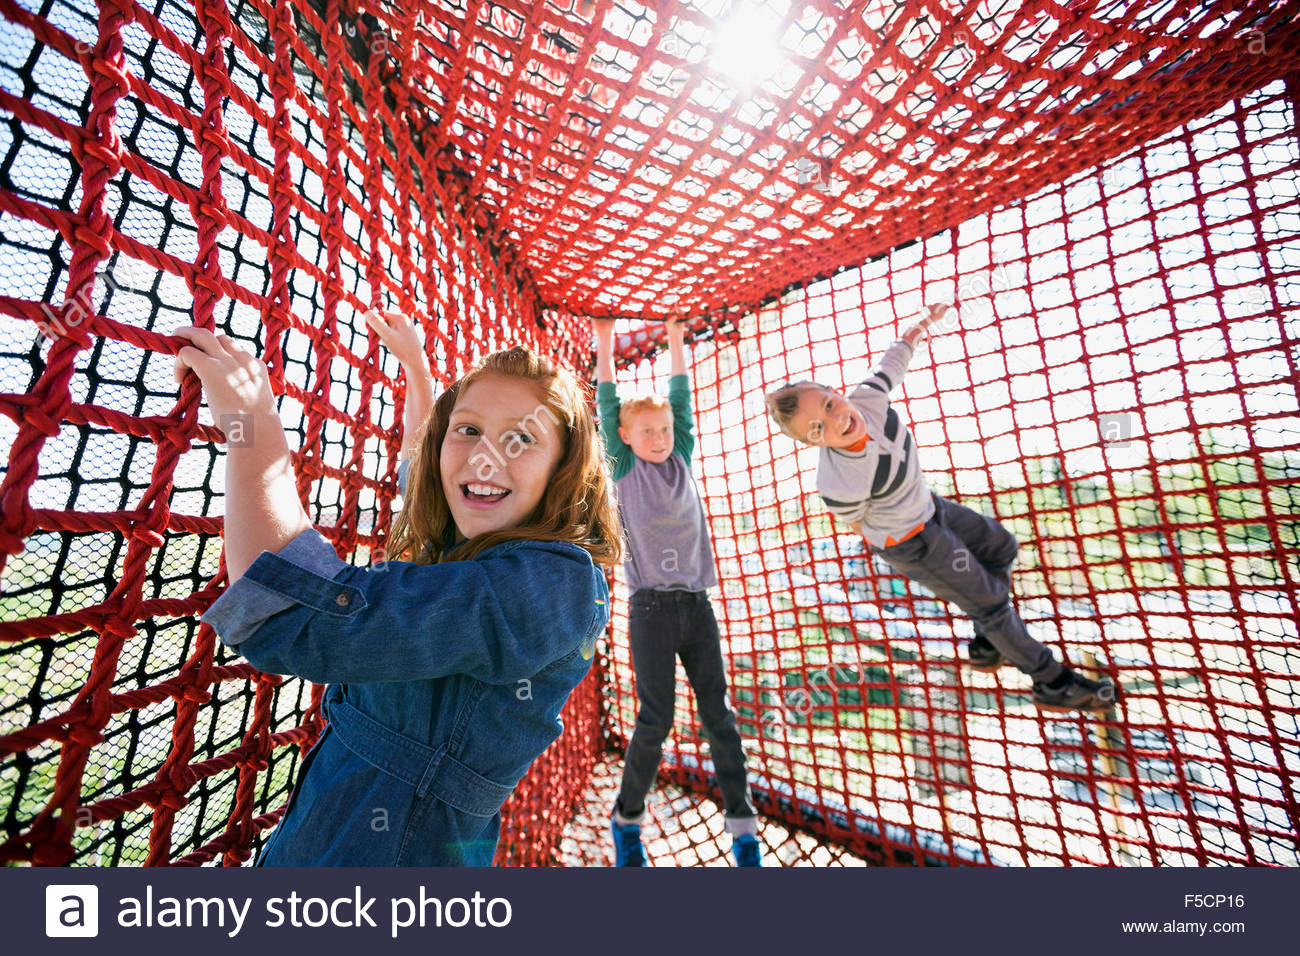 Kids playing and climbing rope net sunny playground - Stock Image